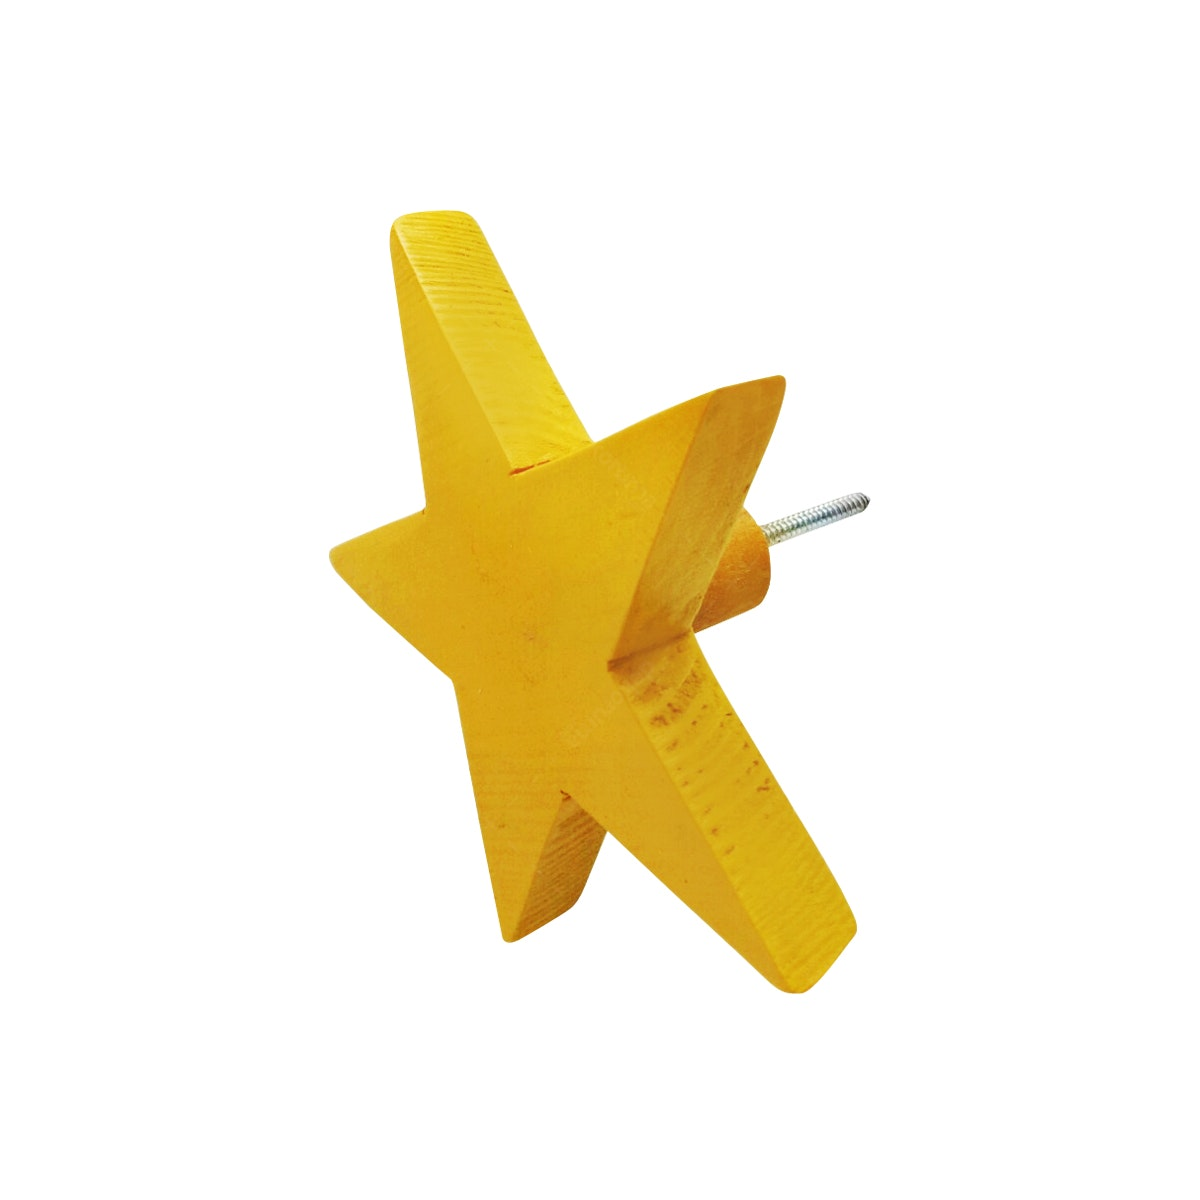 Stiletto Living Wall Hook - Star (Gantungan Dinding) / Abu - Abu